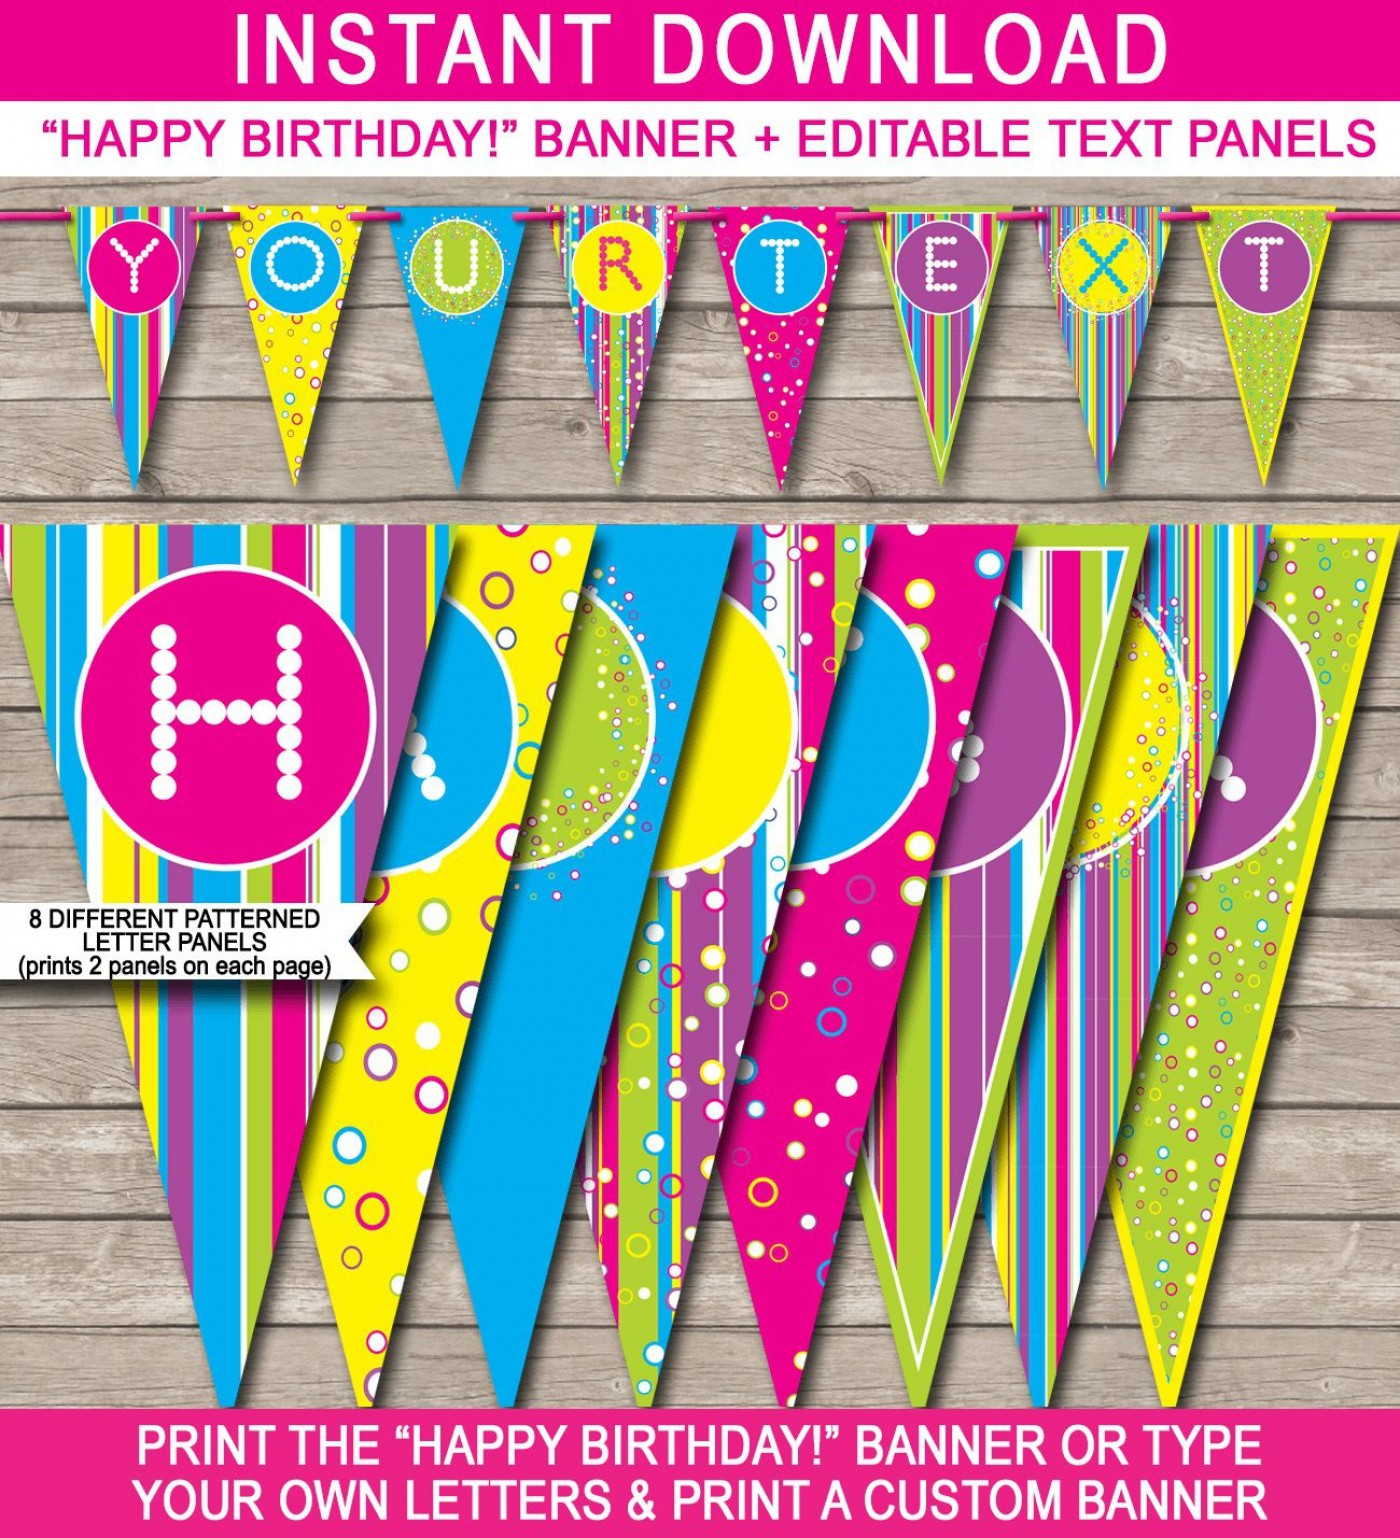 004 Simple Happy Birthday Banner Template Image  Publisher Editable Pdf1400